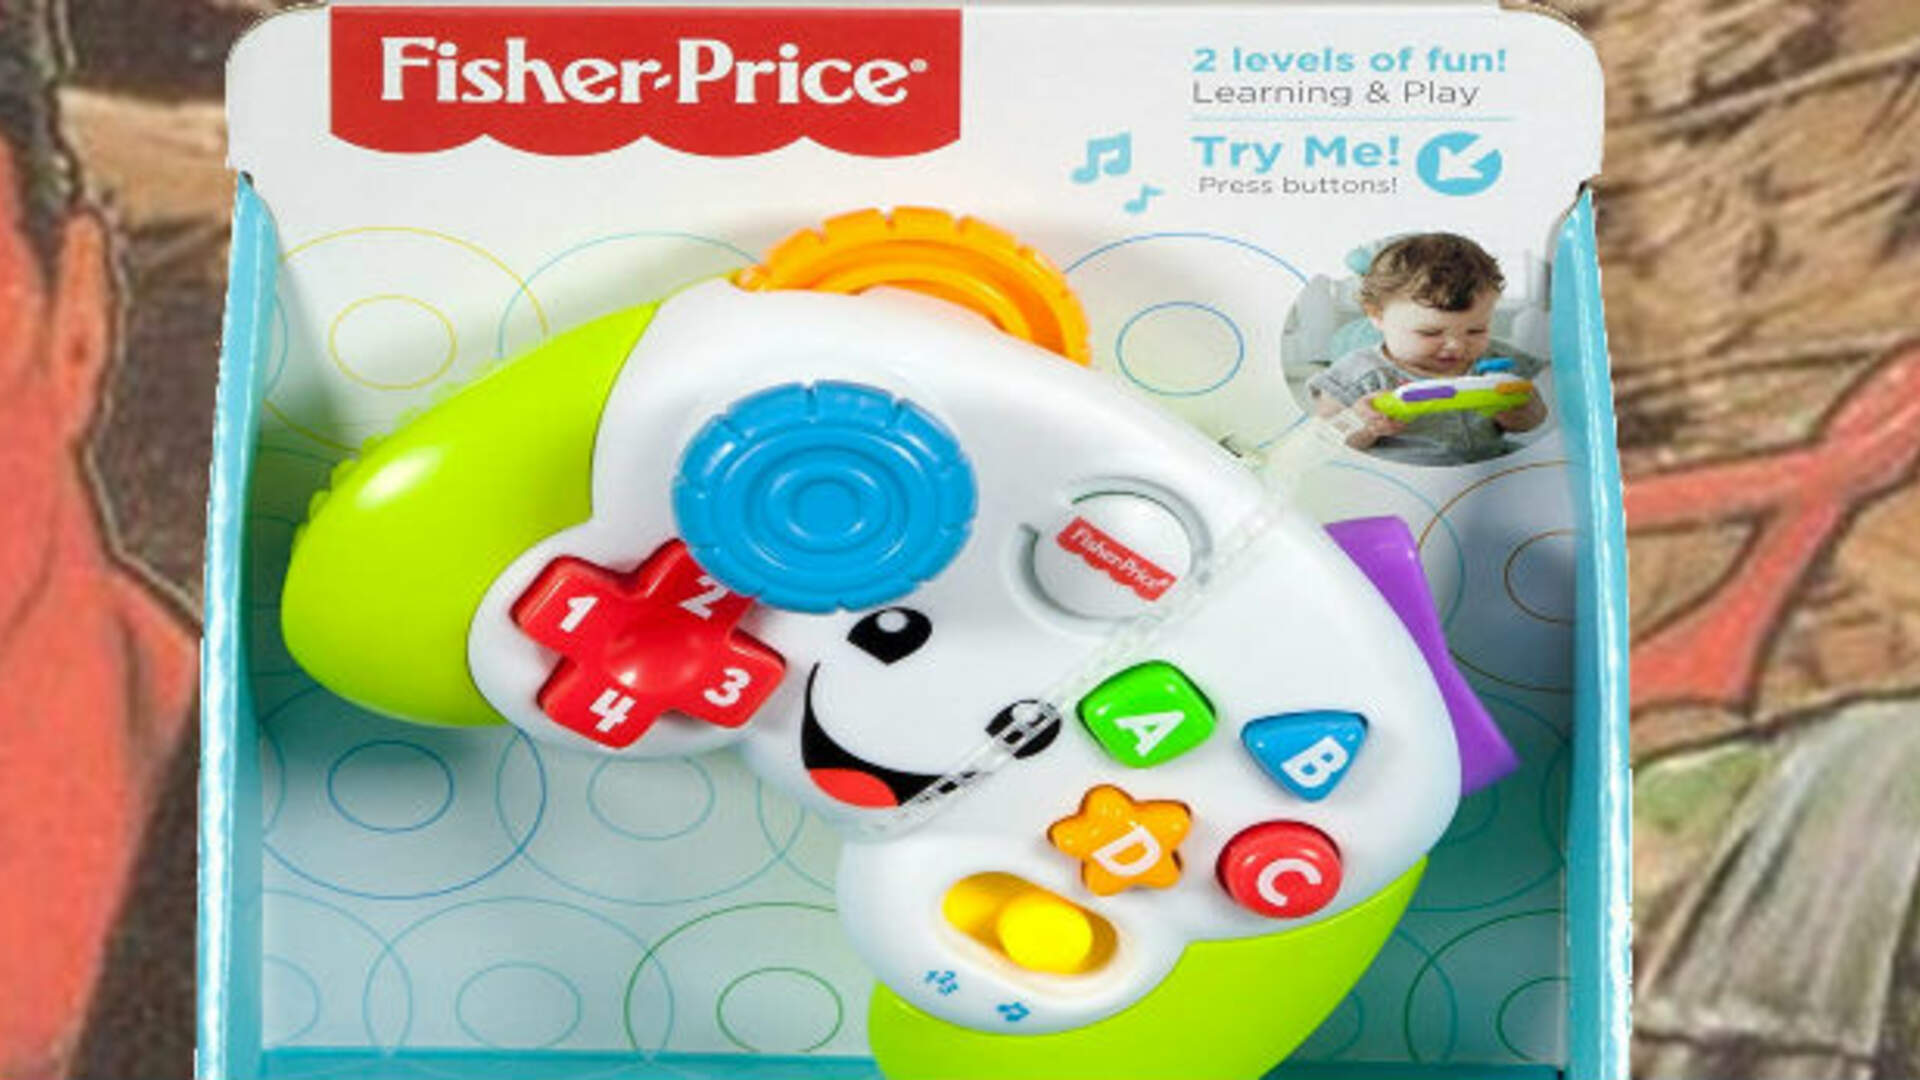 The Famed Konami Code from Contra Works on a New Fisher Price Toy